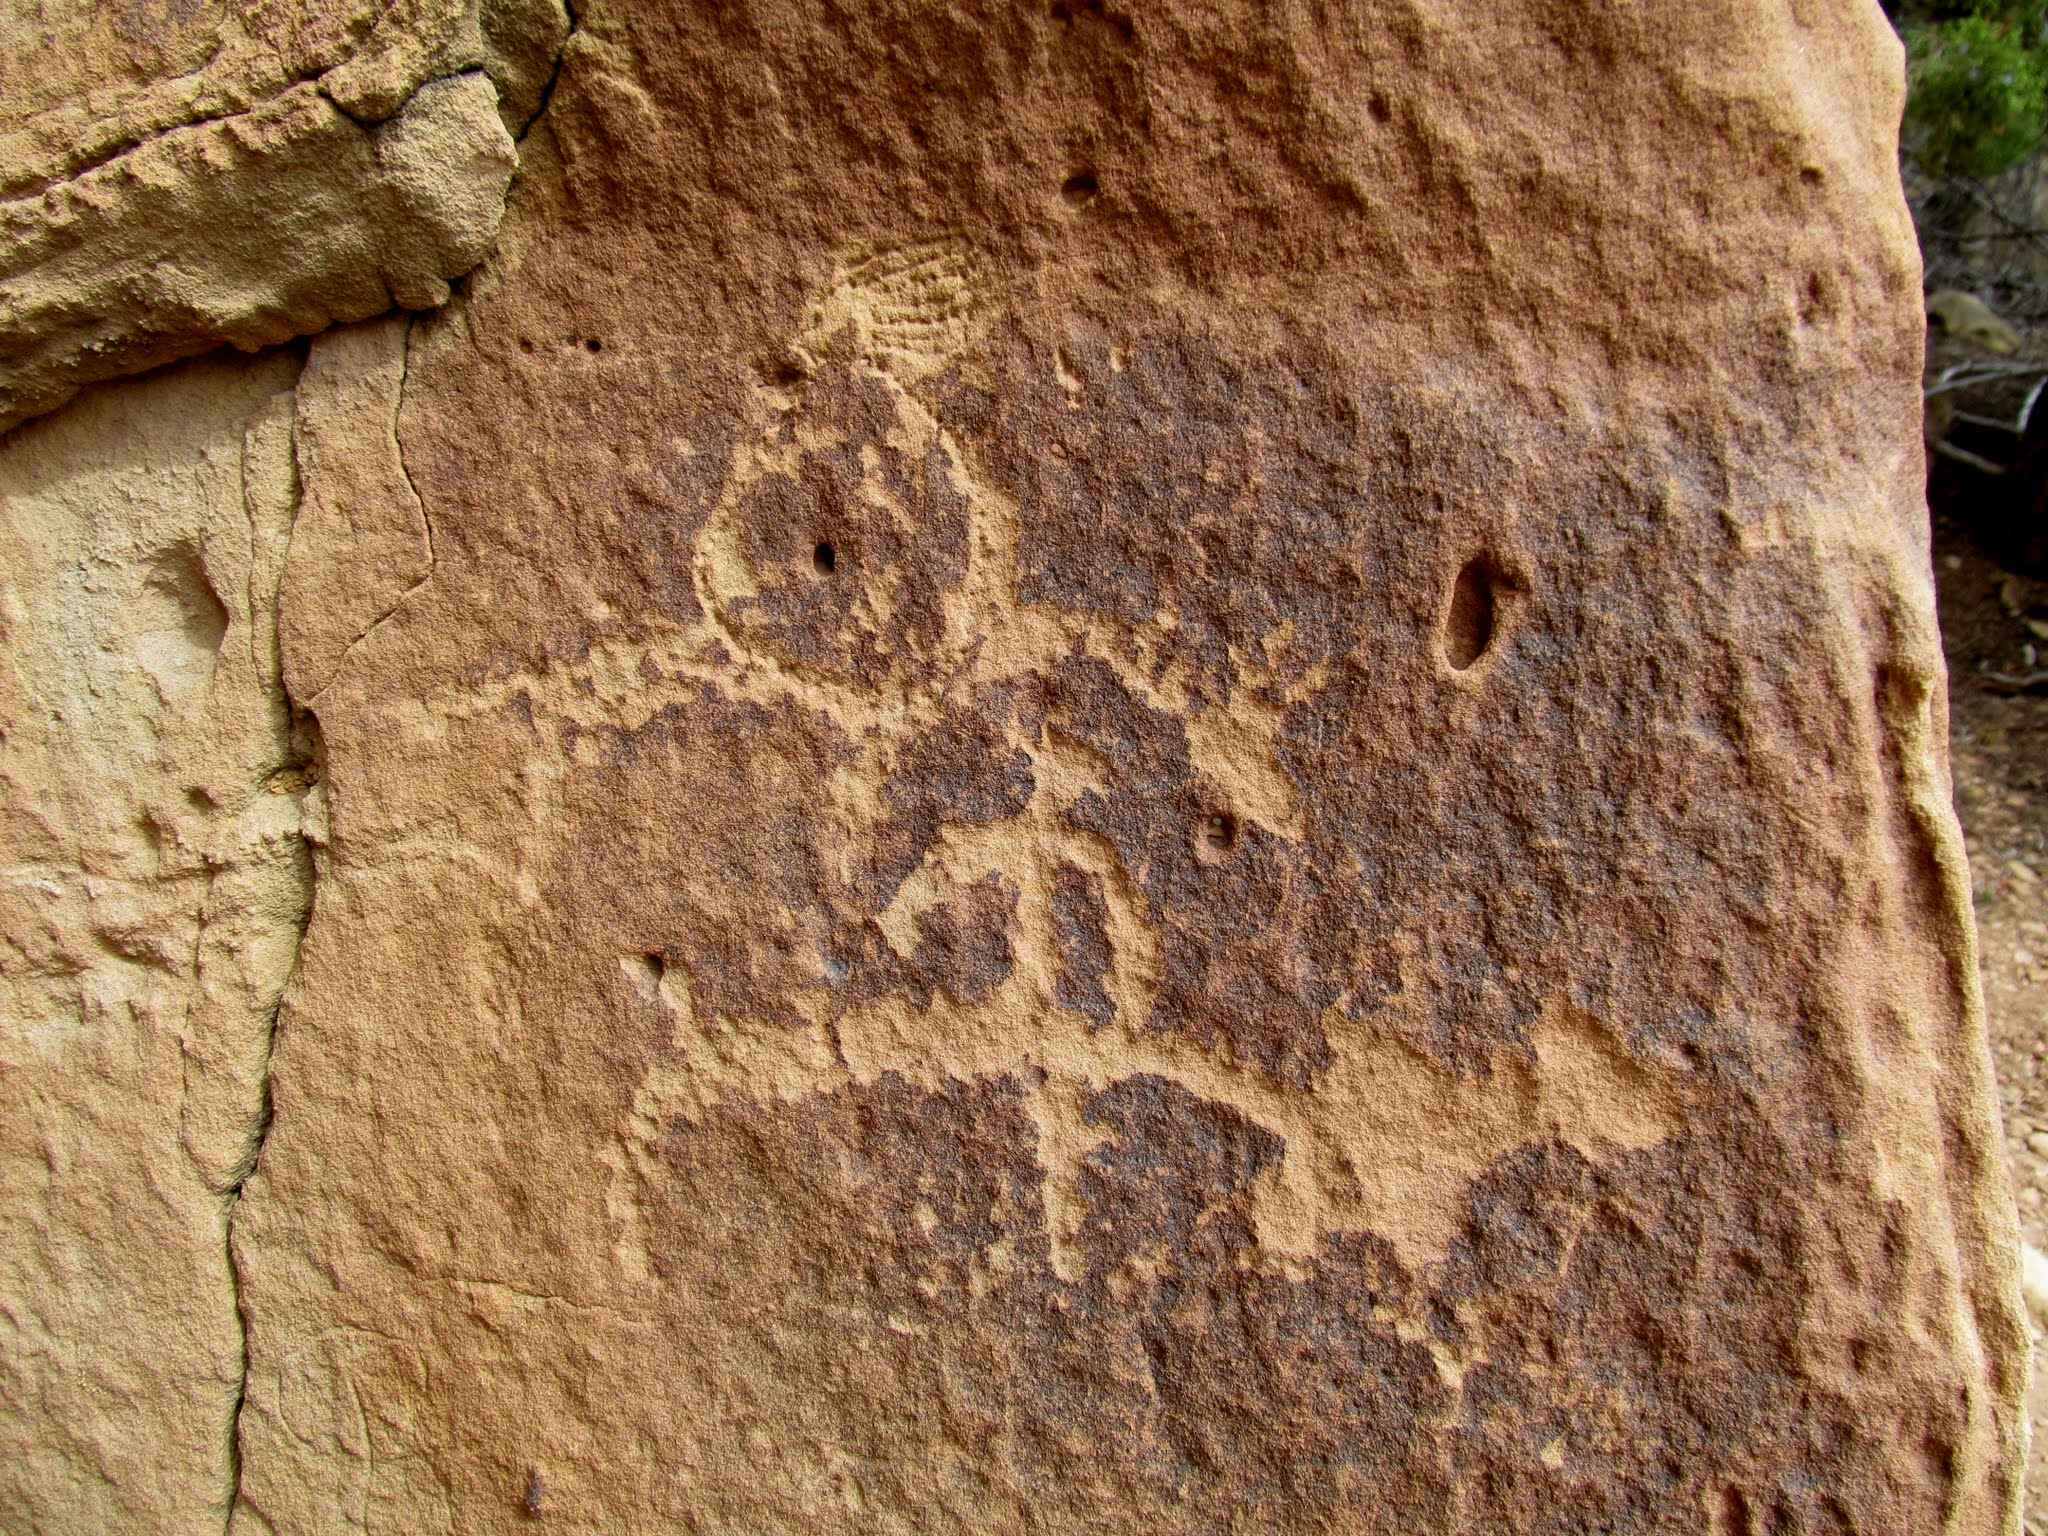 Photo: Ute petroglyphs with interesting headdress